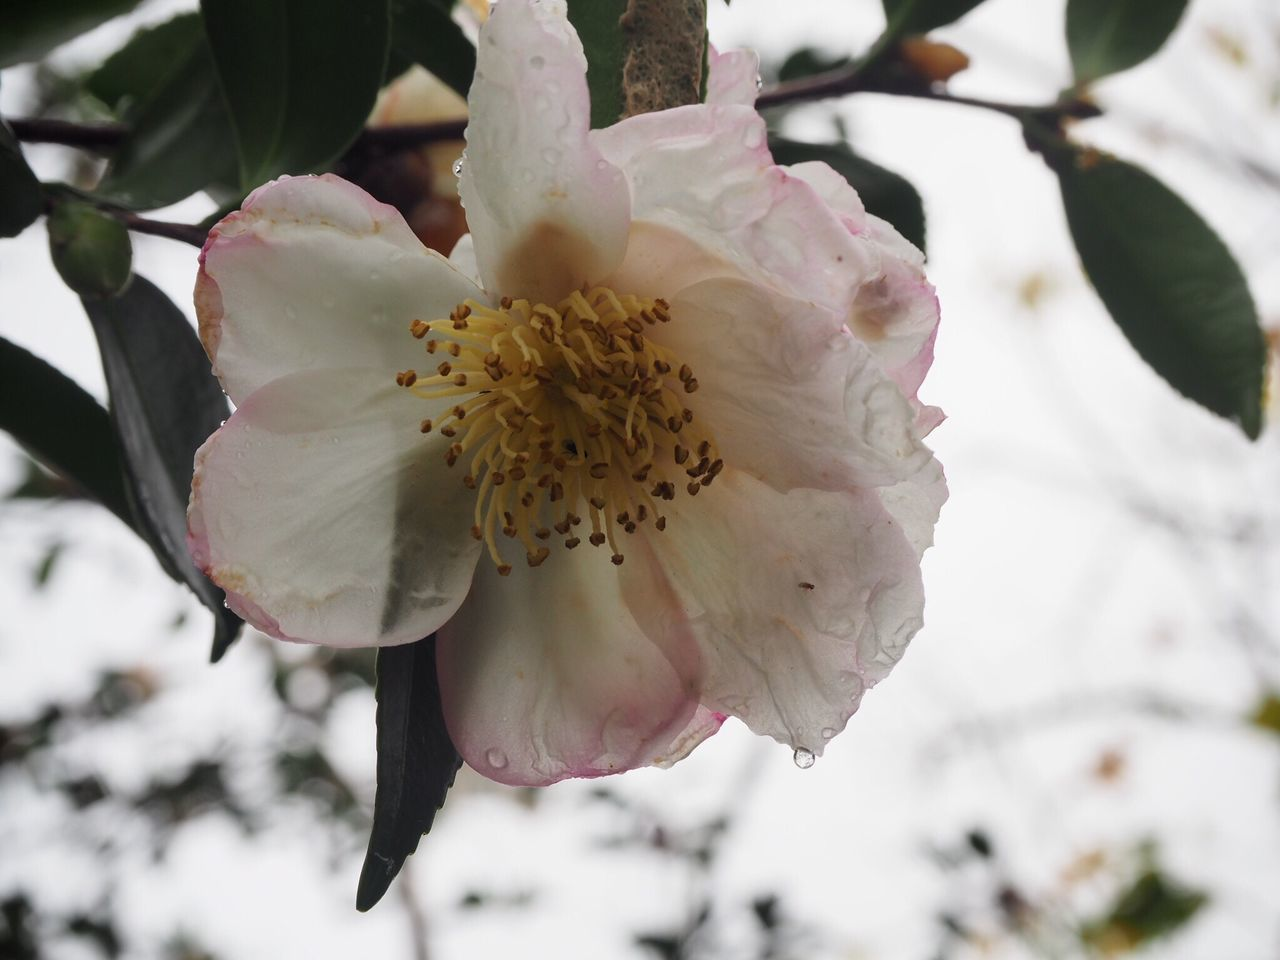 After the rain Flower Fragility Beauty In Nature Petal Nature Flower Head Blossom Freshness White Color Close-up Stamen Branch Camellia Raindrops